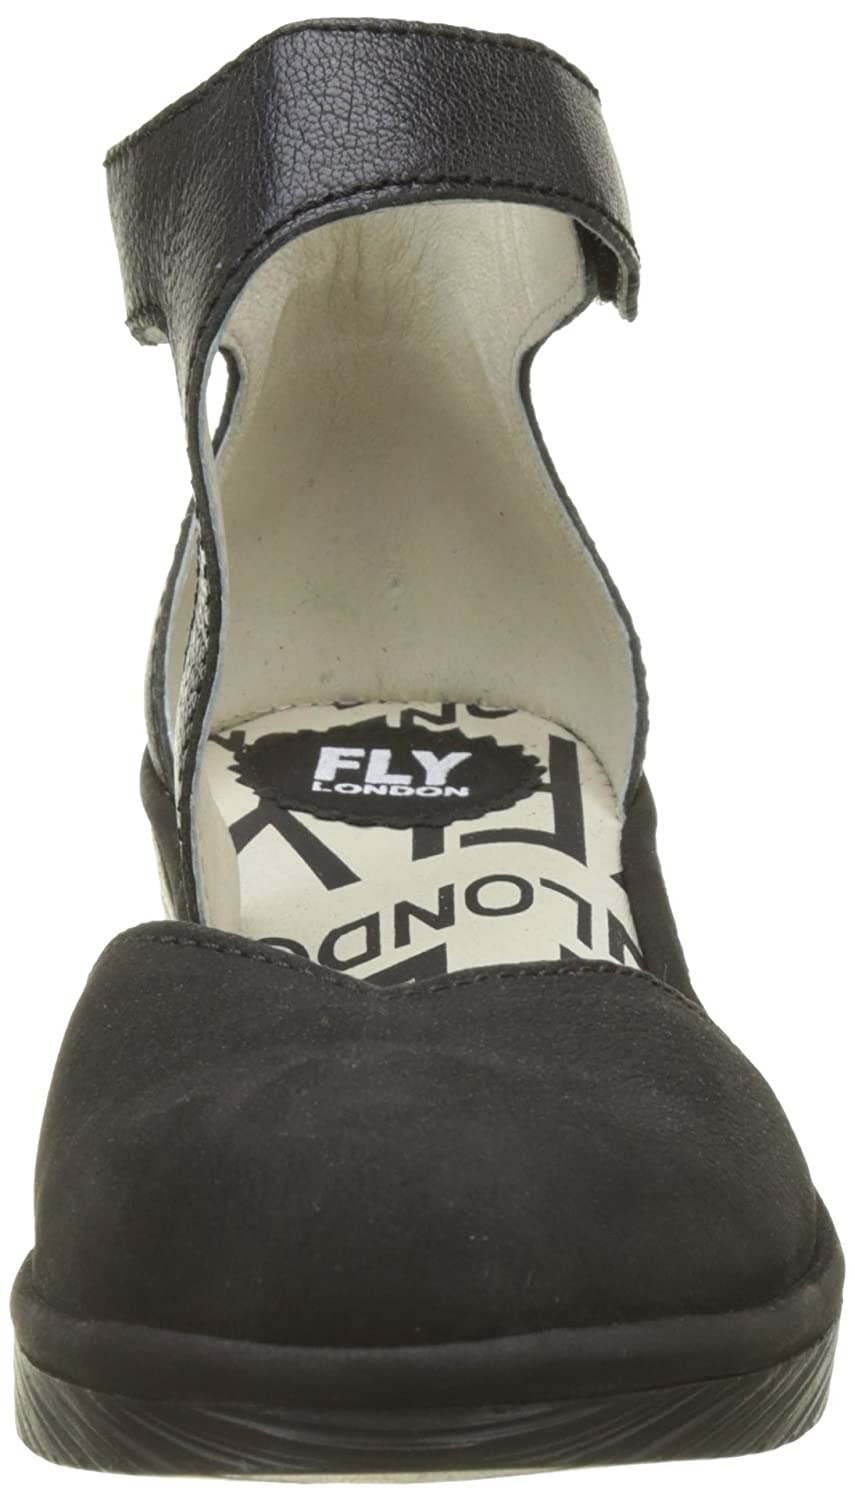 FLY London Pats Womens Casual Wedge Heel Shoes